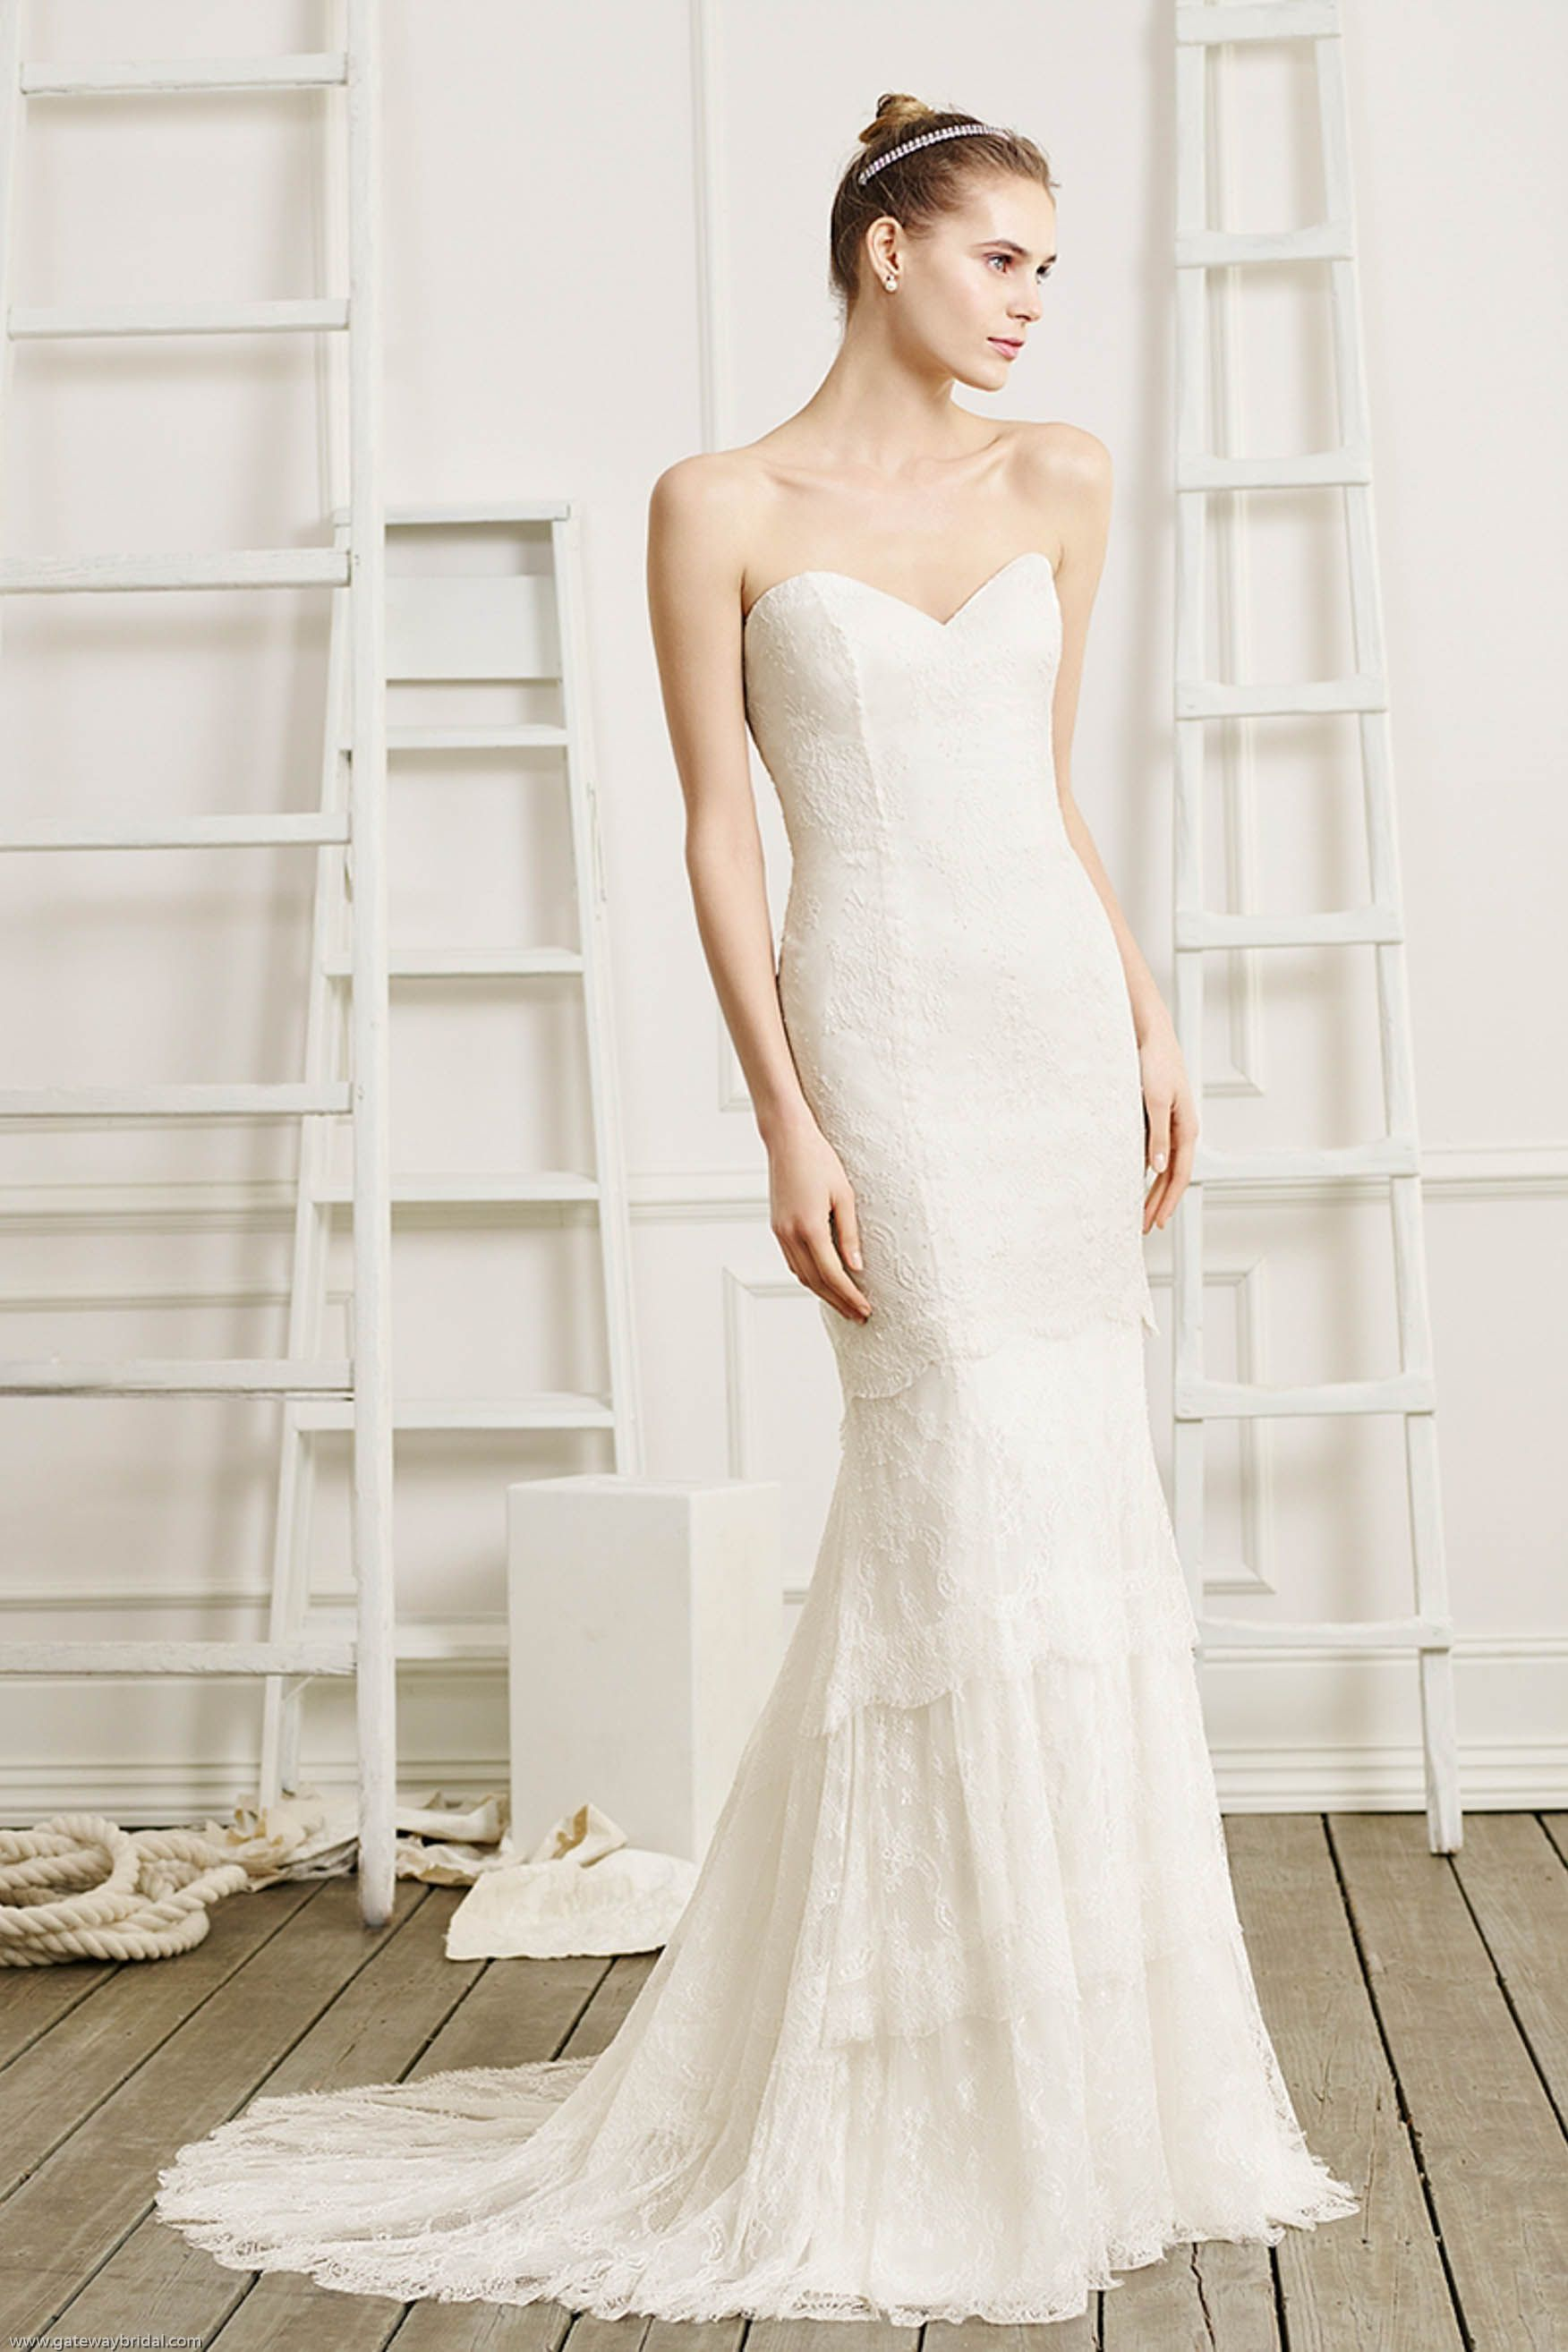 Strapless Wedding Dress with Lace | BL216 by Gateway Bridal and ...